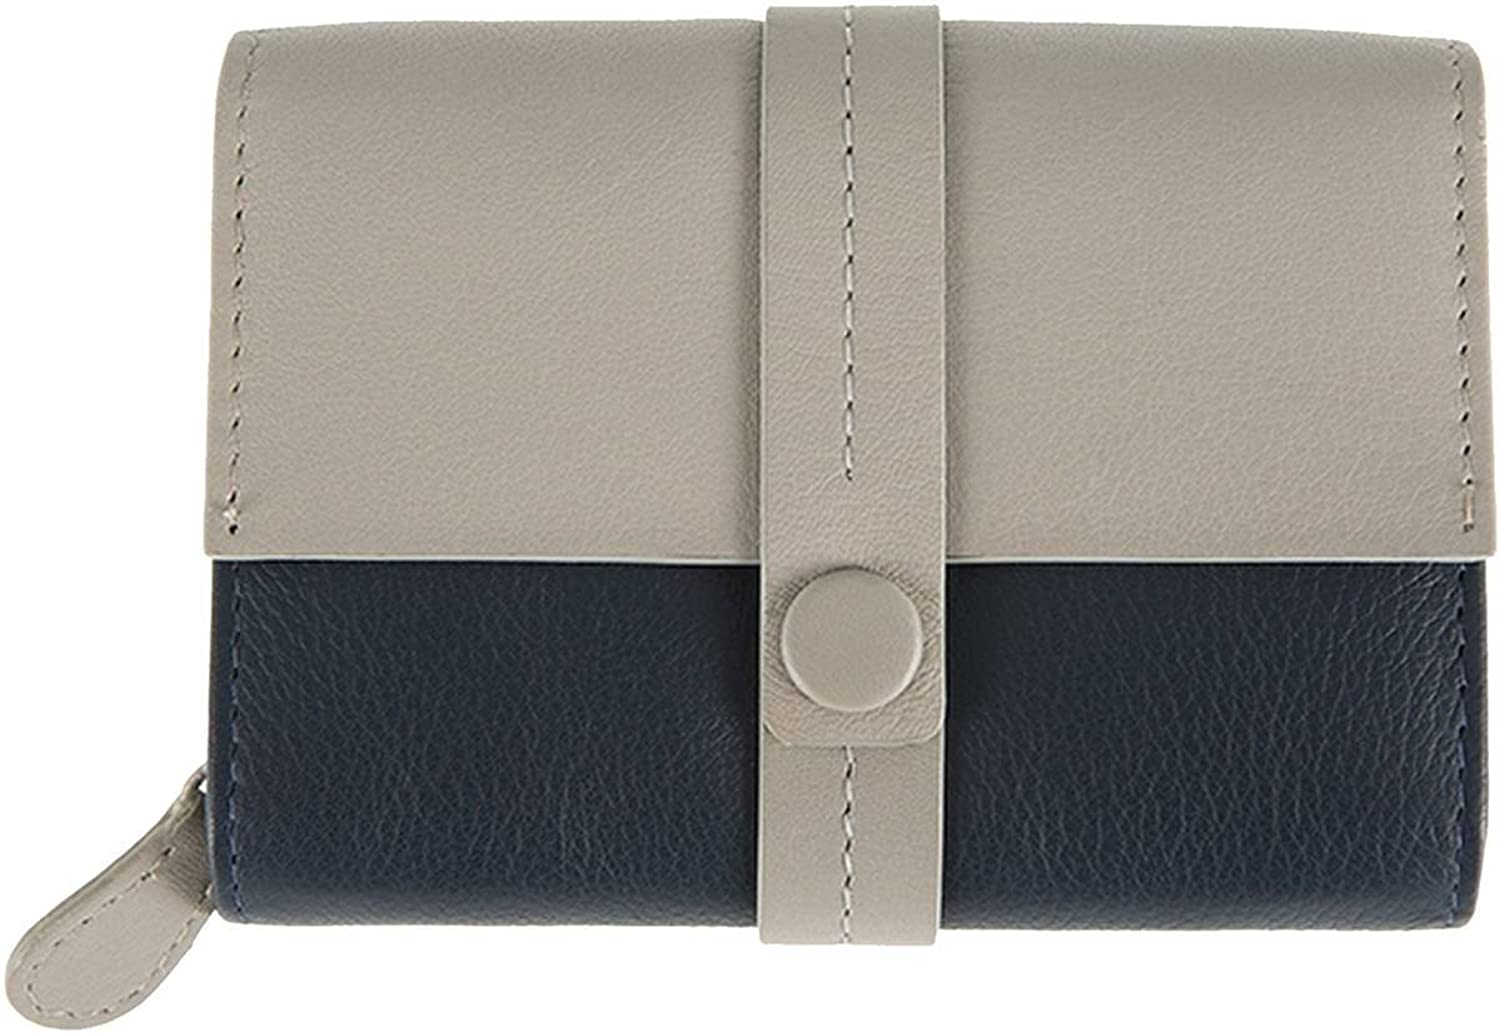 Dents Womens Small Block Colour Purse  Off White Navy